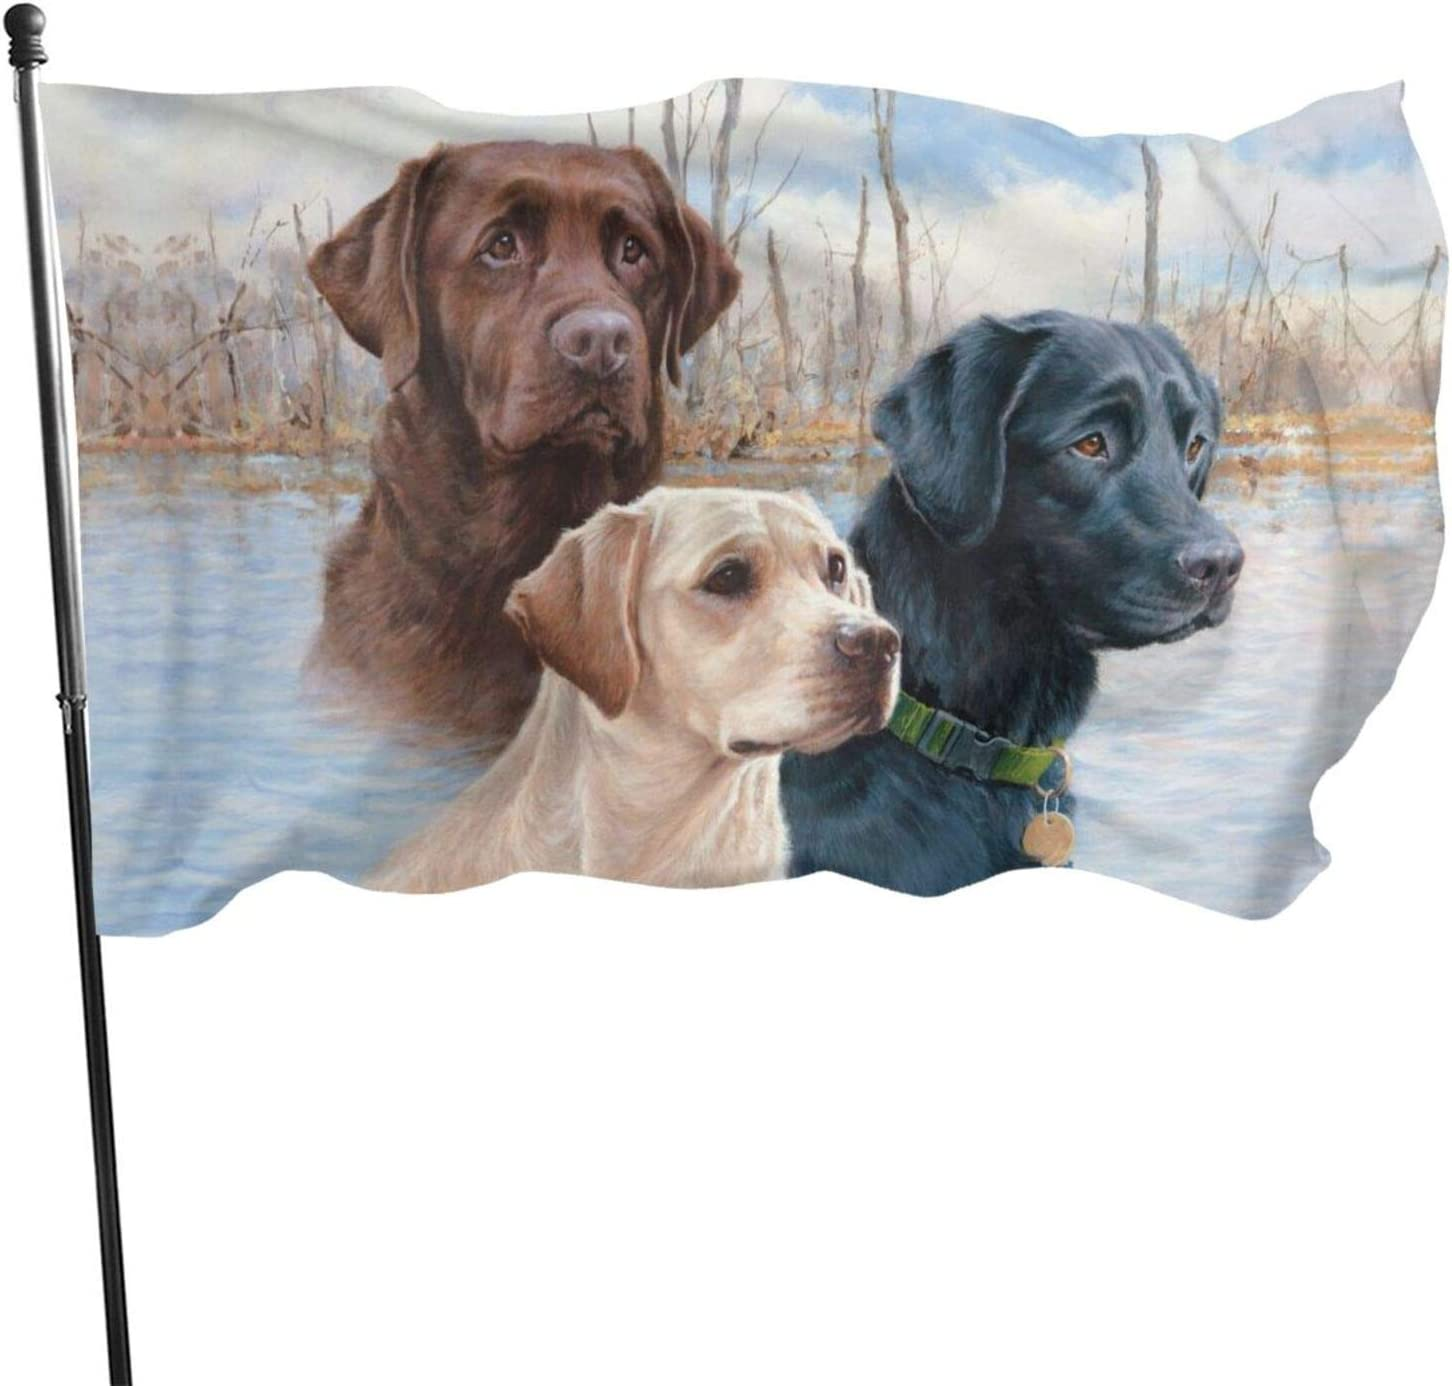 Granbey Collection Labrador Flag Retrievers Dogs Polyester Flags UV Fade Resistant Black Golden Brown Dogs Printing Waterproof Flag Heavy Duty Durable Flags Built for Outdoors Garden Decor 3X5FT